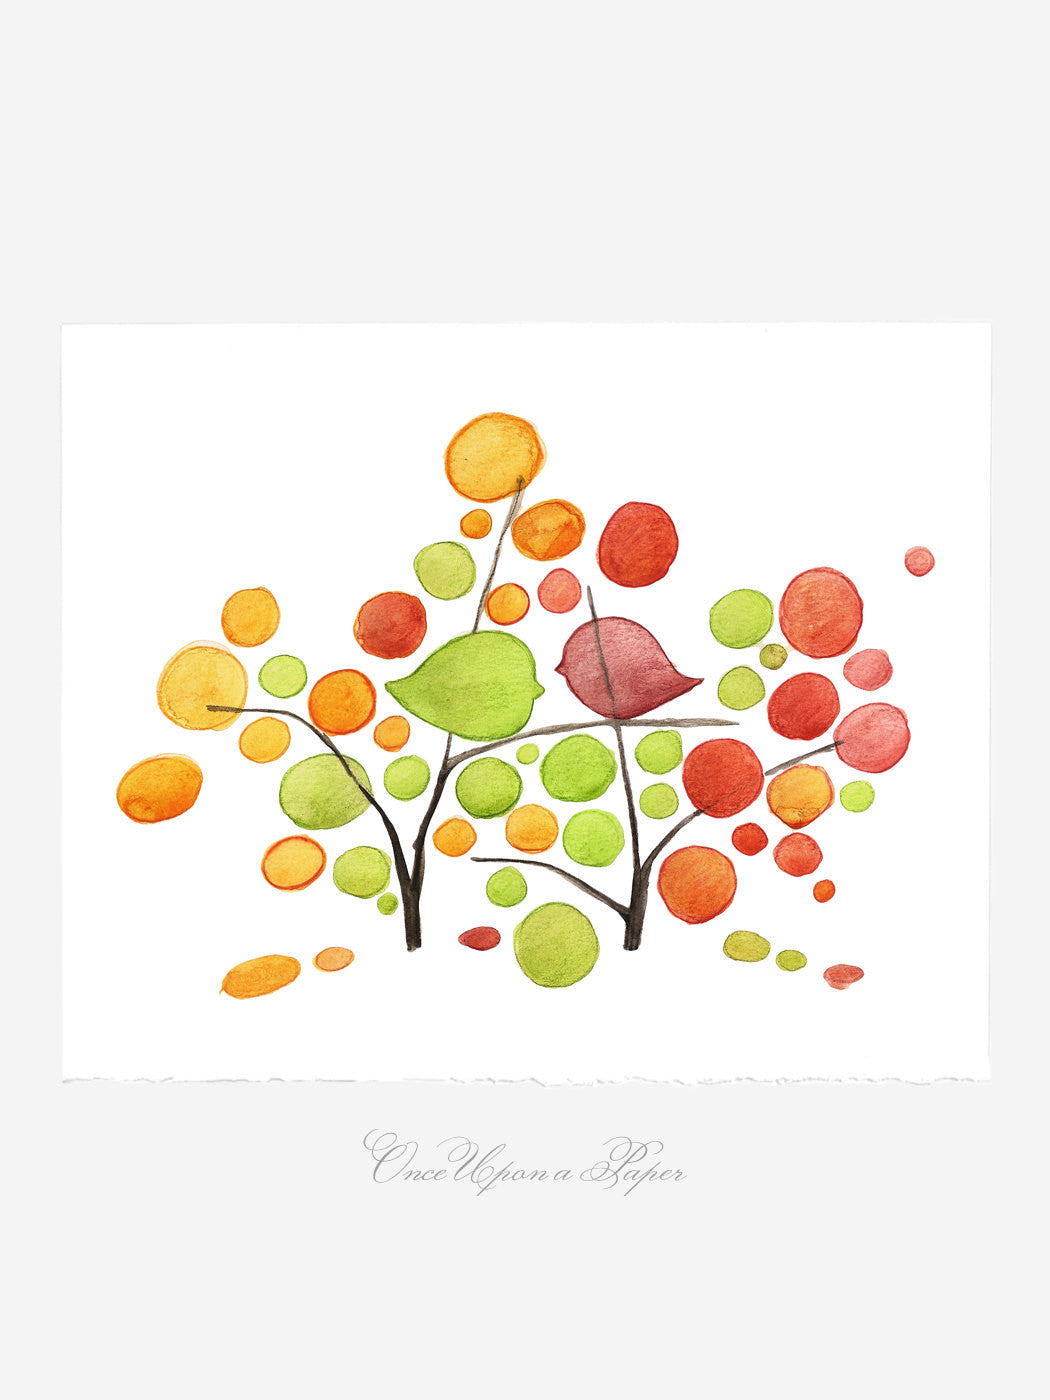 Annyversary Gift - To BIRD with LOVE - Giclee Art Print Reproduction of Watercolor Painting -Trees of Life Collection